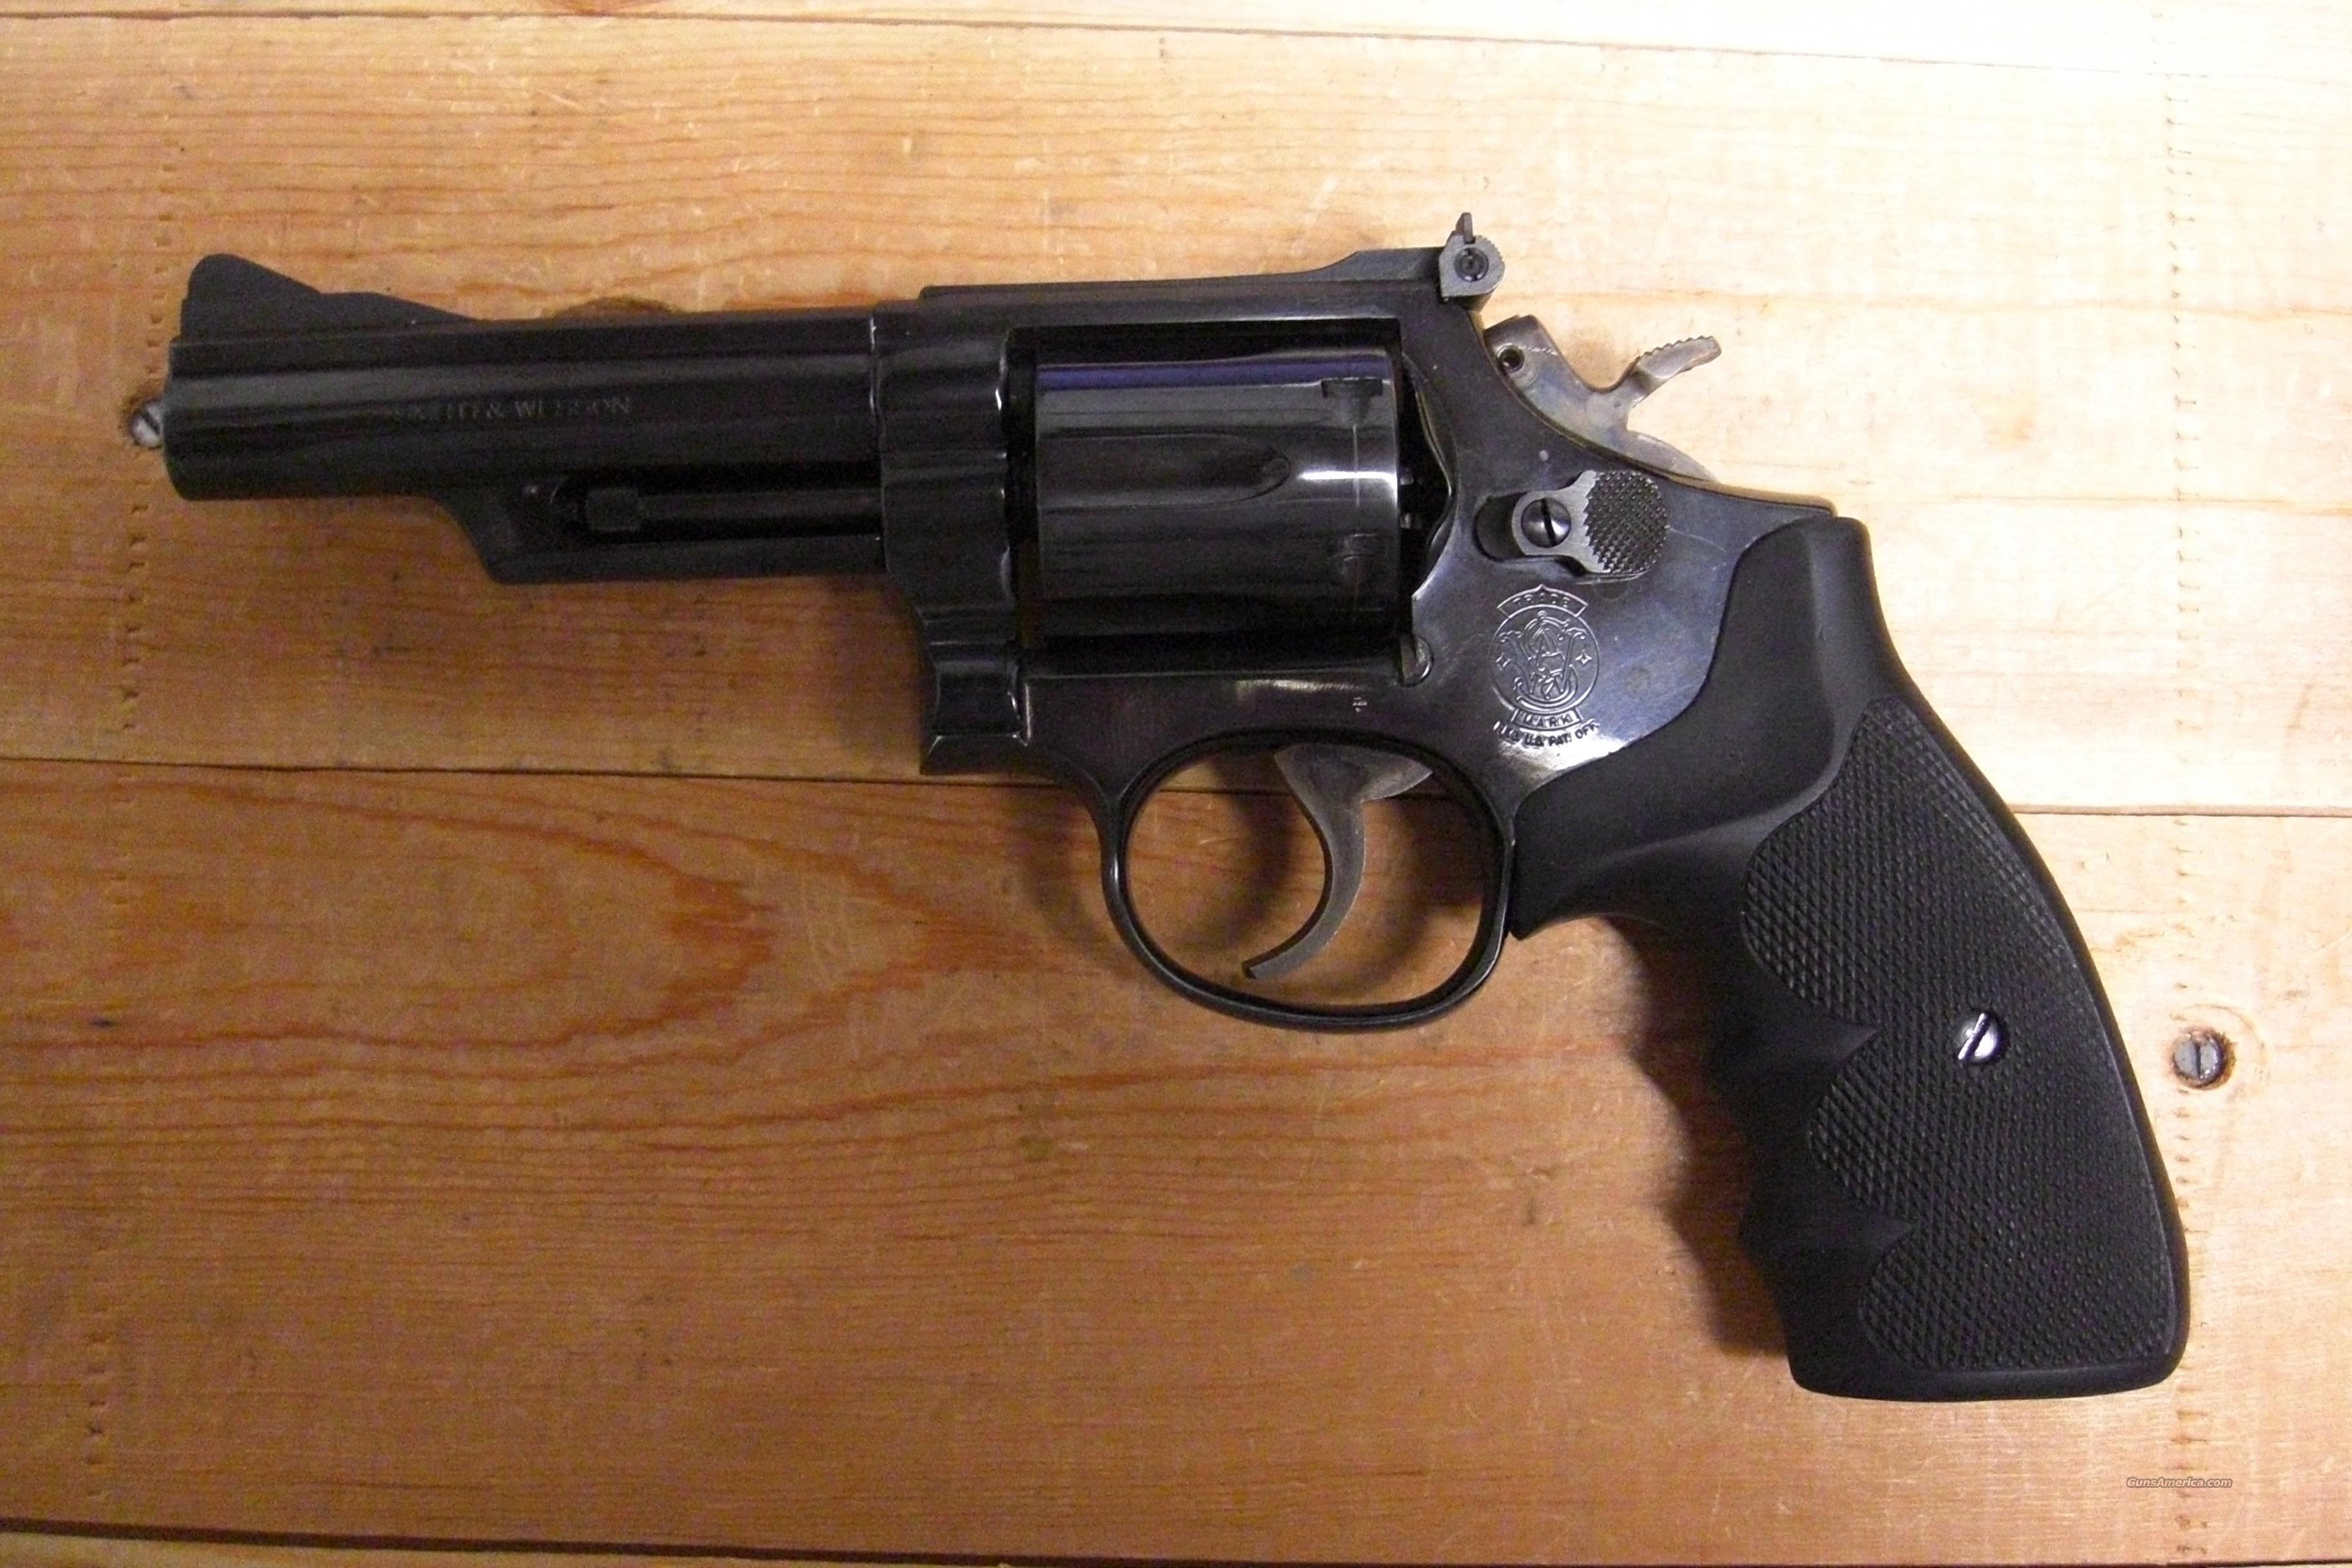 19-5 w/blued finish  Guns > Pistols > Smith & Wesson Revolvers > Full Frame Revolver